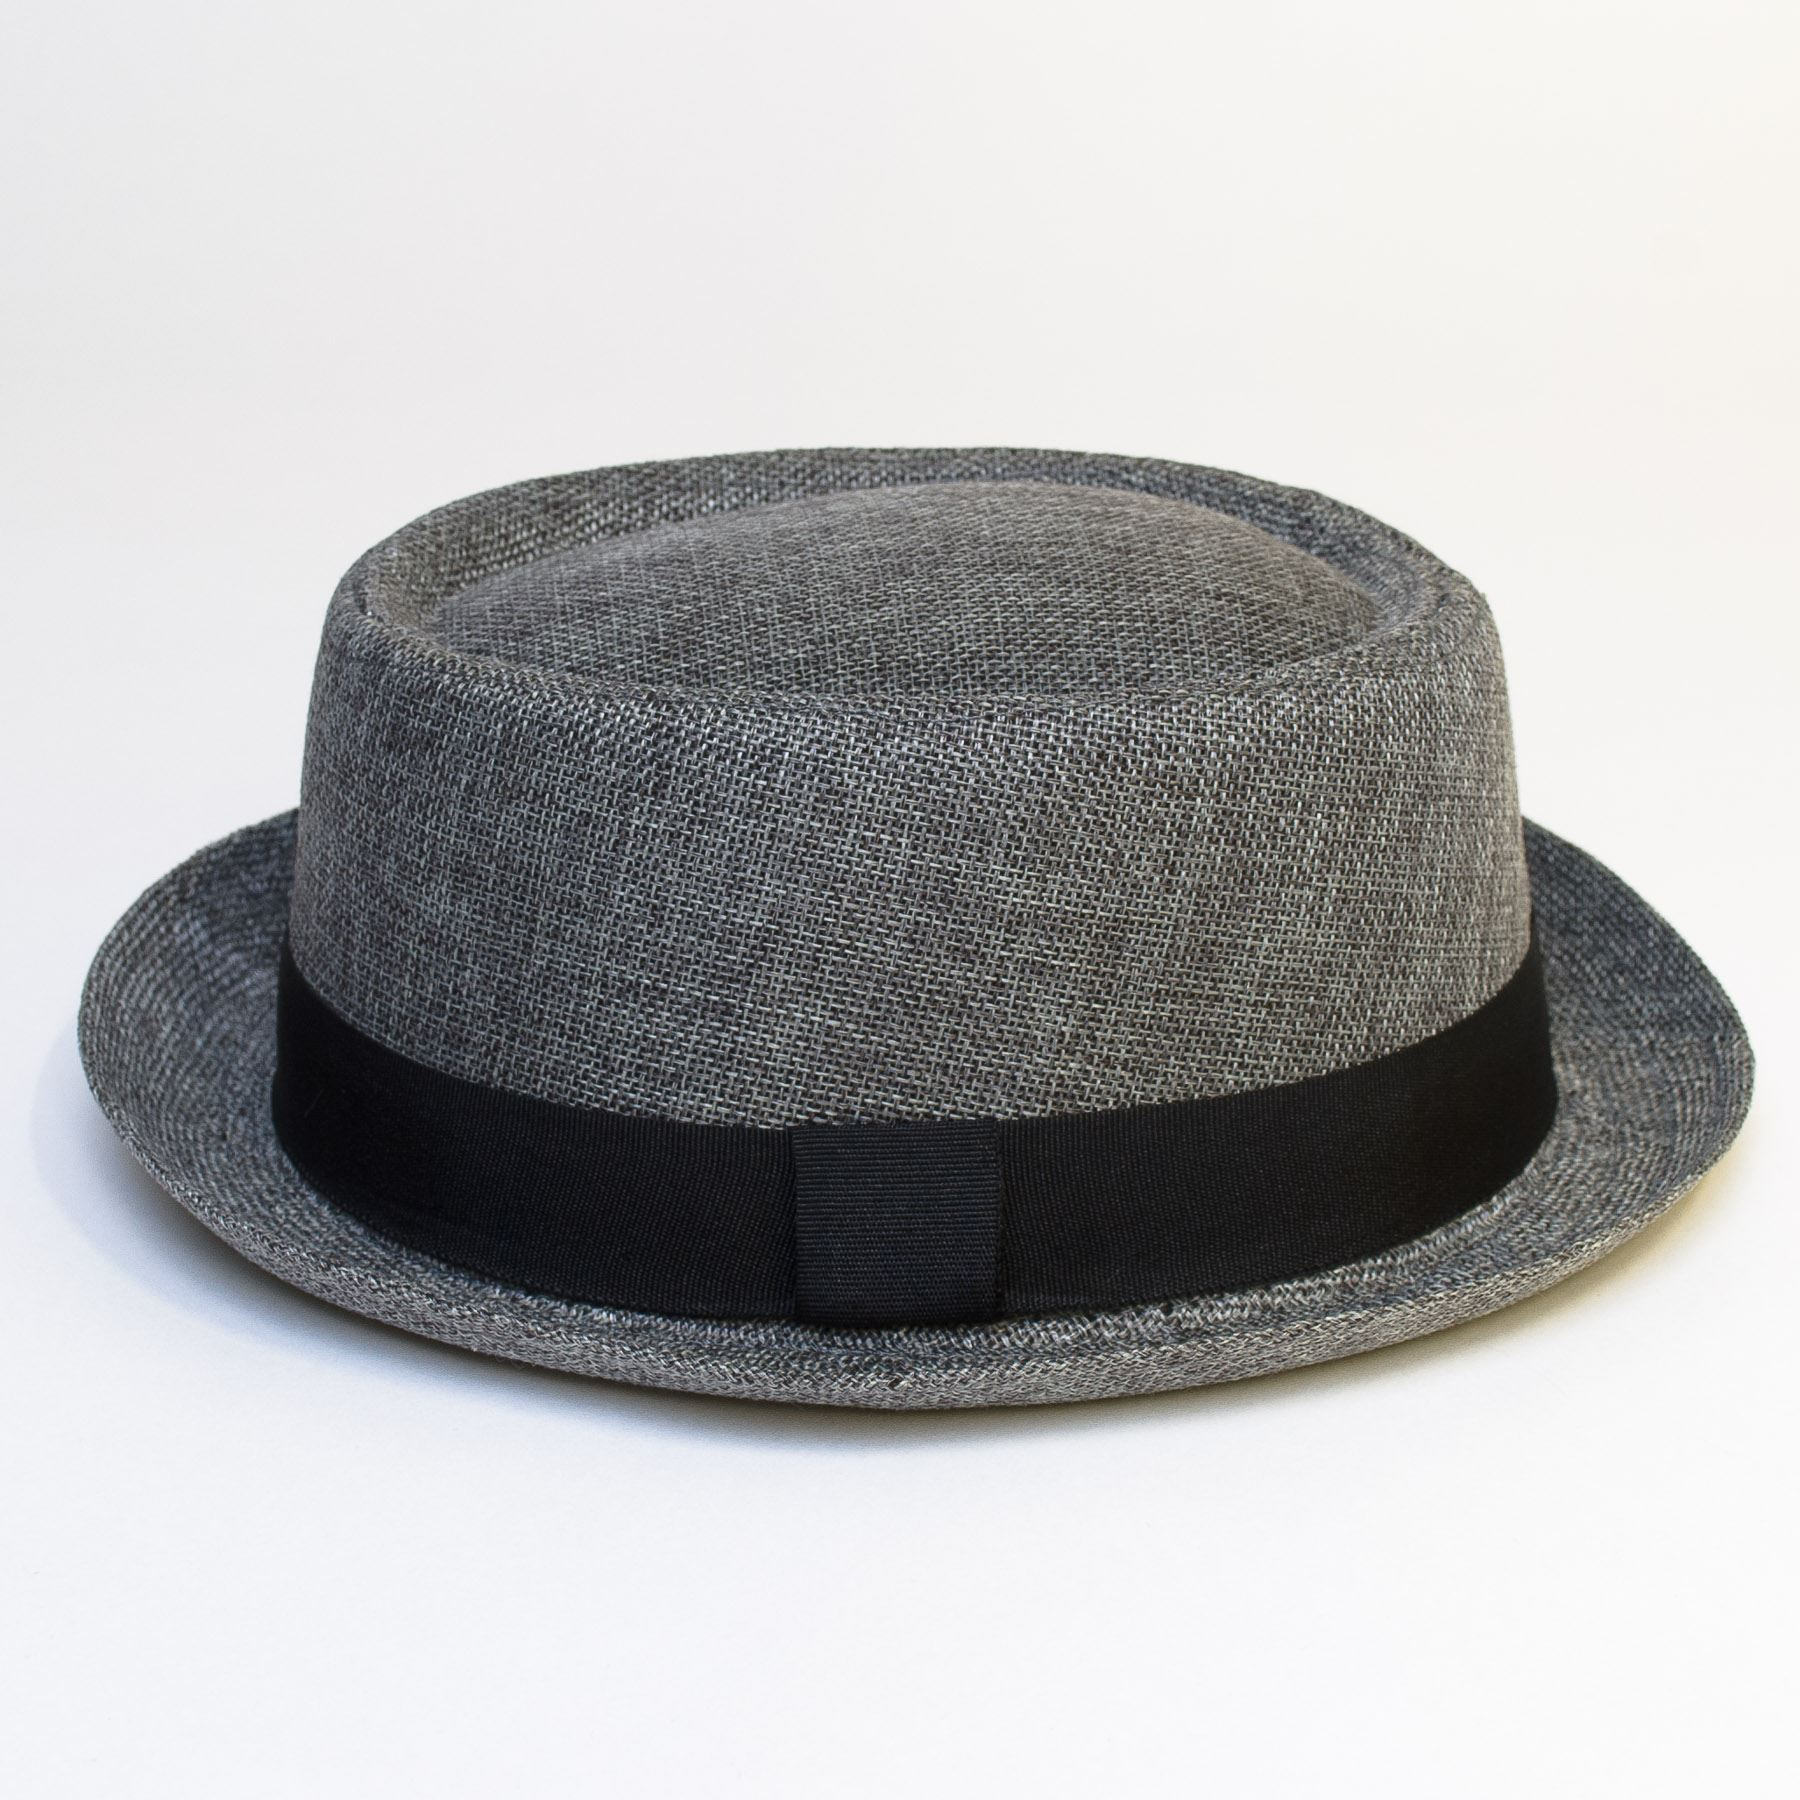 Pork-Pie-Hat-with-Black-Grosgrain-Band thumbnail 19